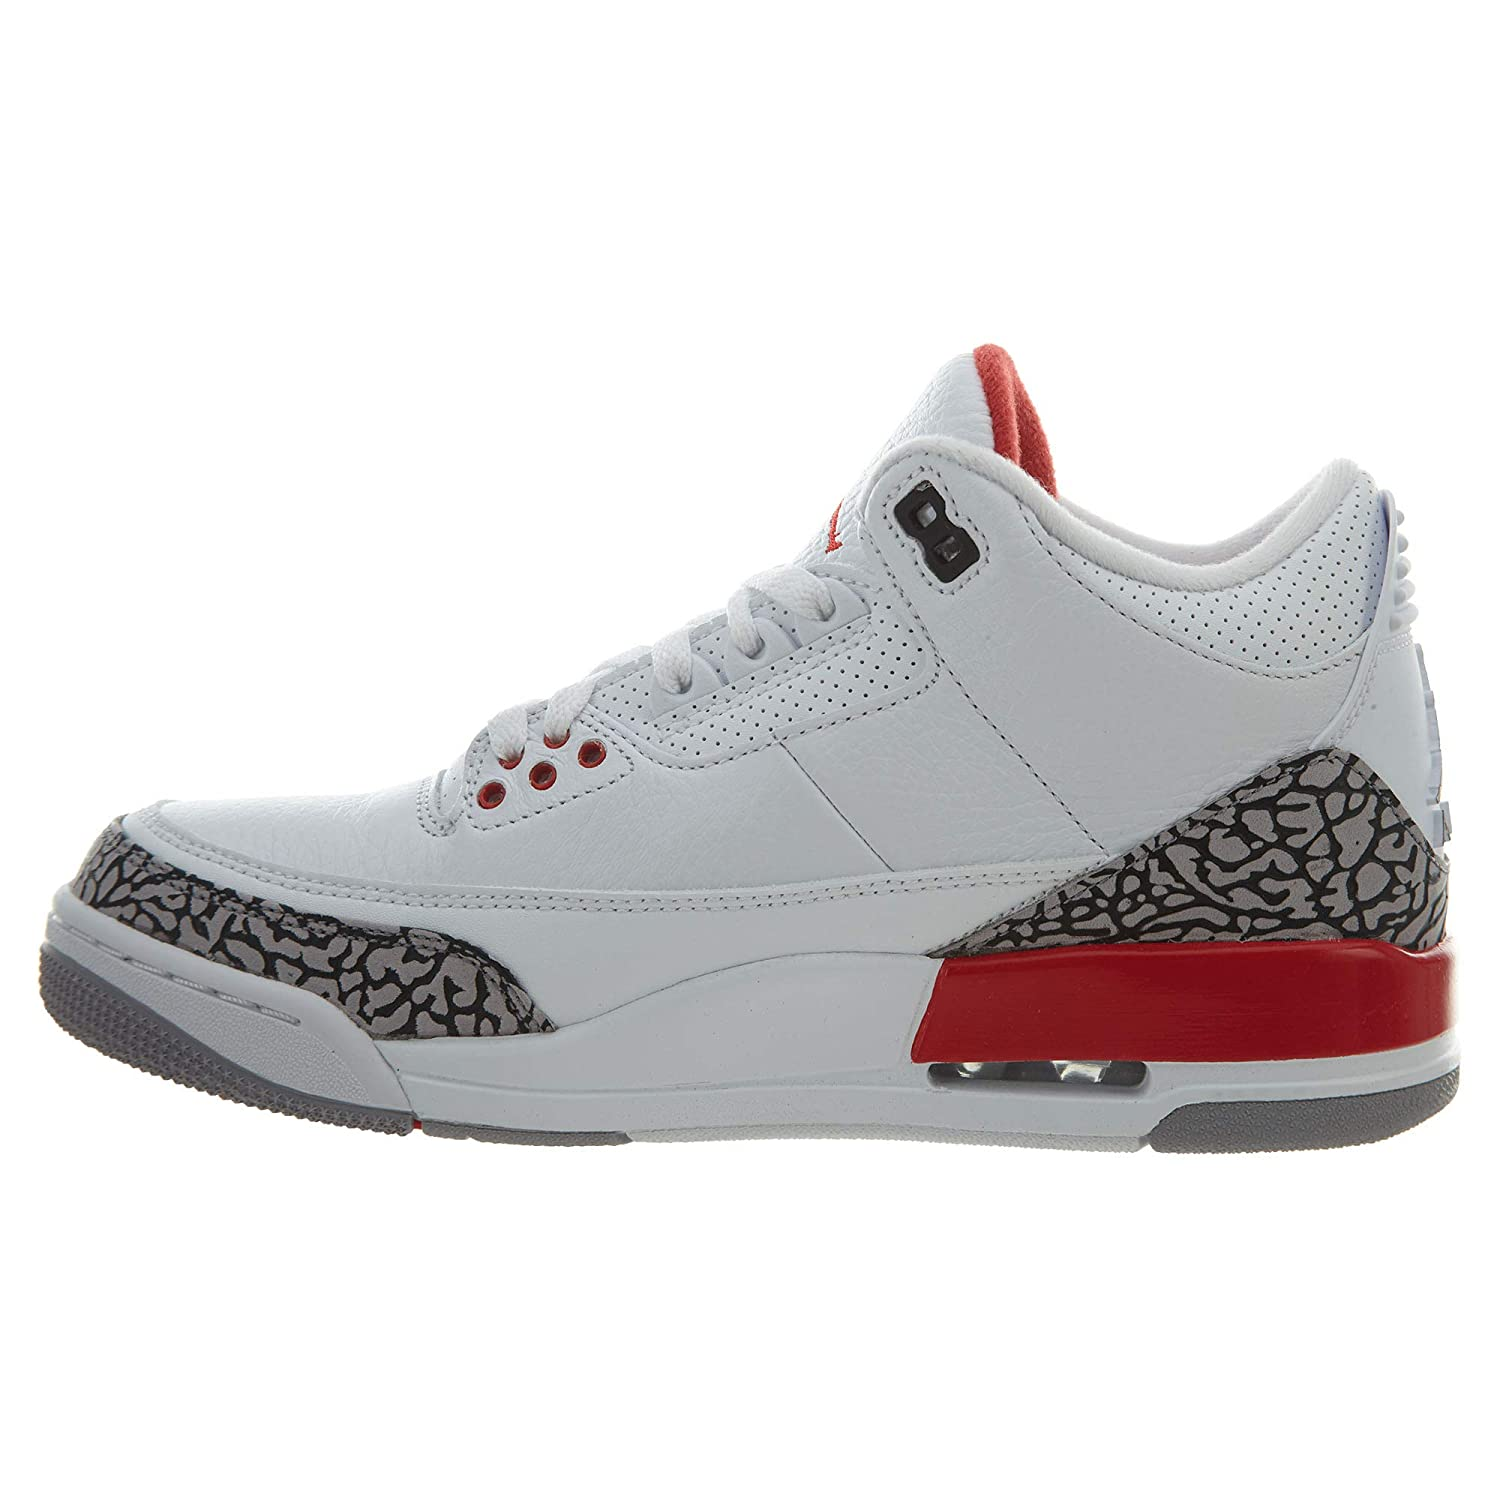 premium selection 34a31 8afc4 Air Jordan 3 Retro Katrina 136064 116 Size 7.5 White/Red/Black